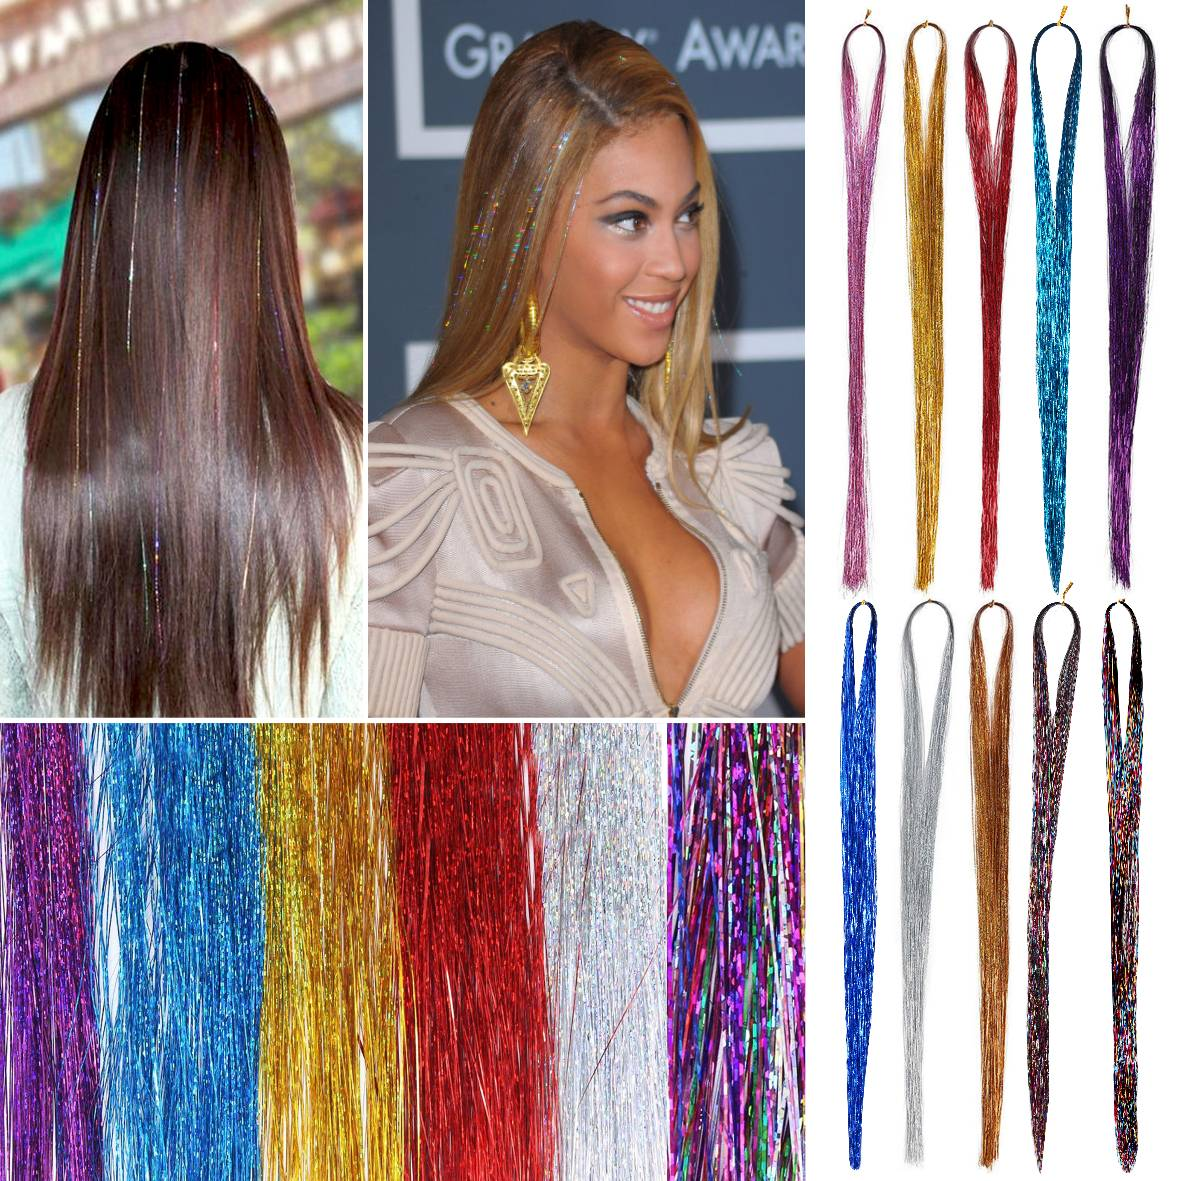 100 X Strands Holographic Sparkle Hair Tinsel Extensions Dazzles